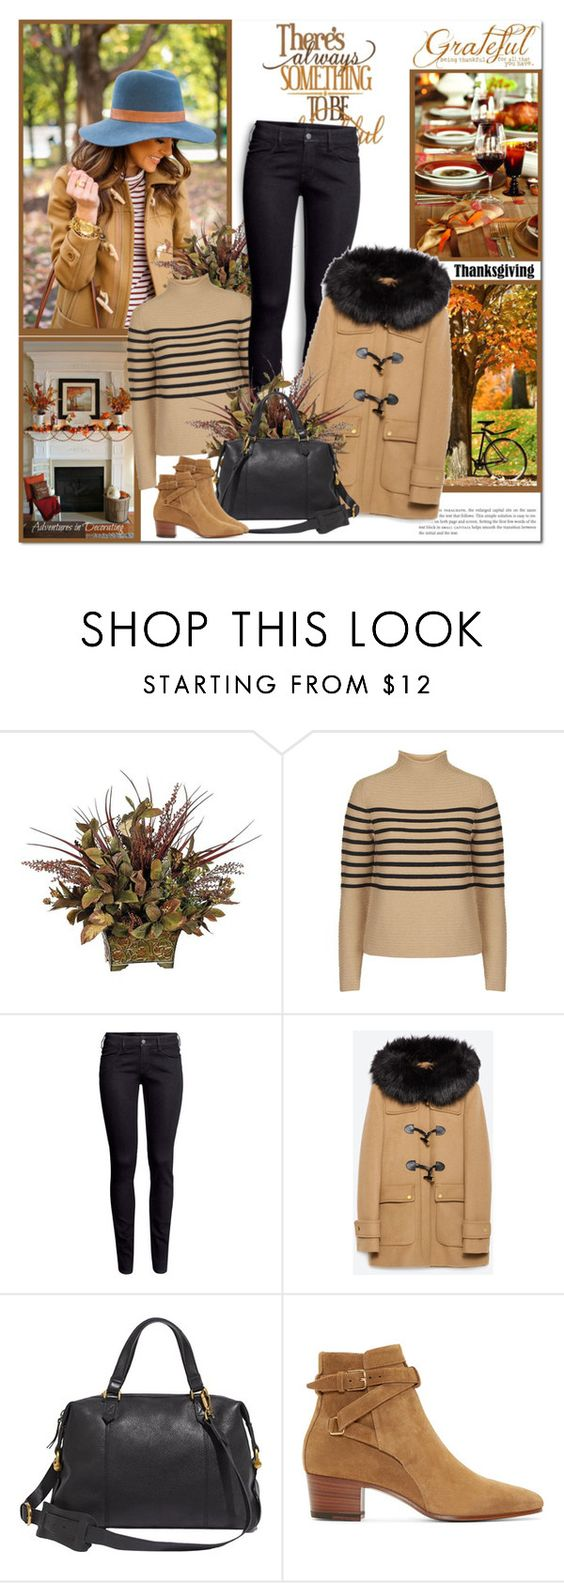 """Home for Thanksgiving"" by lilly-2711 ❤ liked on Polyvore featuring Unique, H&M, Zara, Madewell and Yves Saint Laurent"